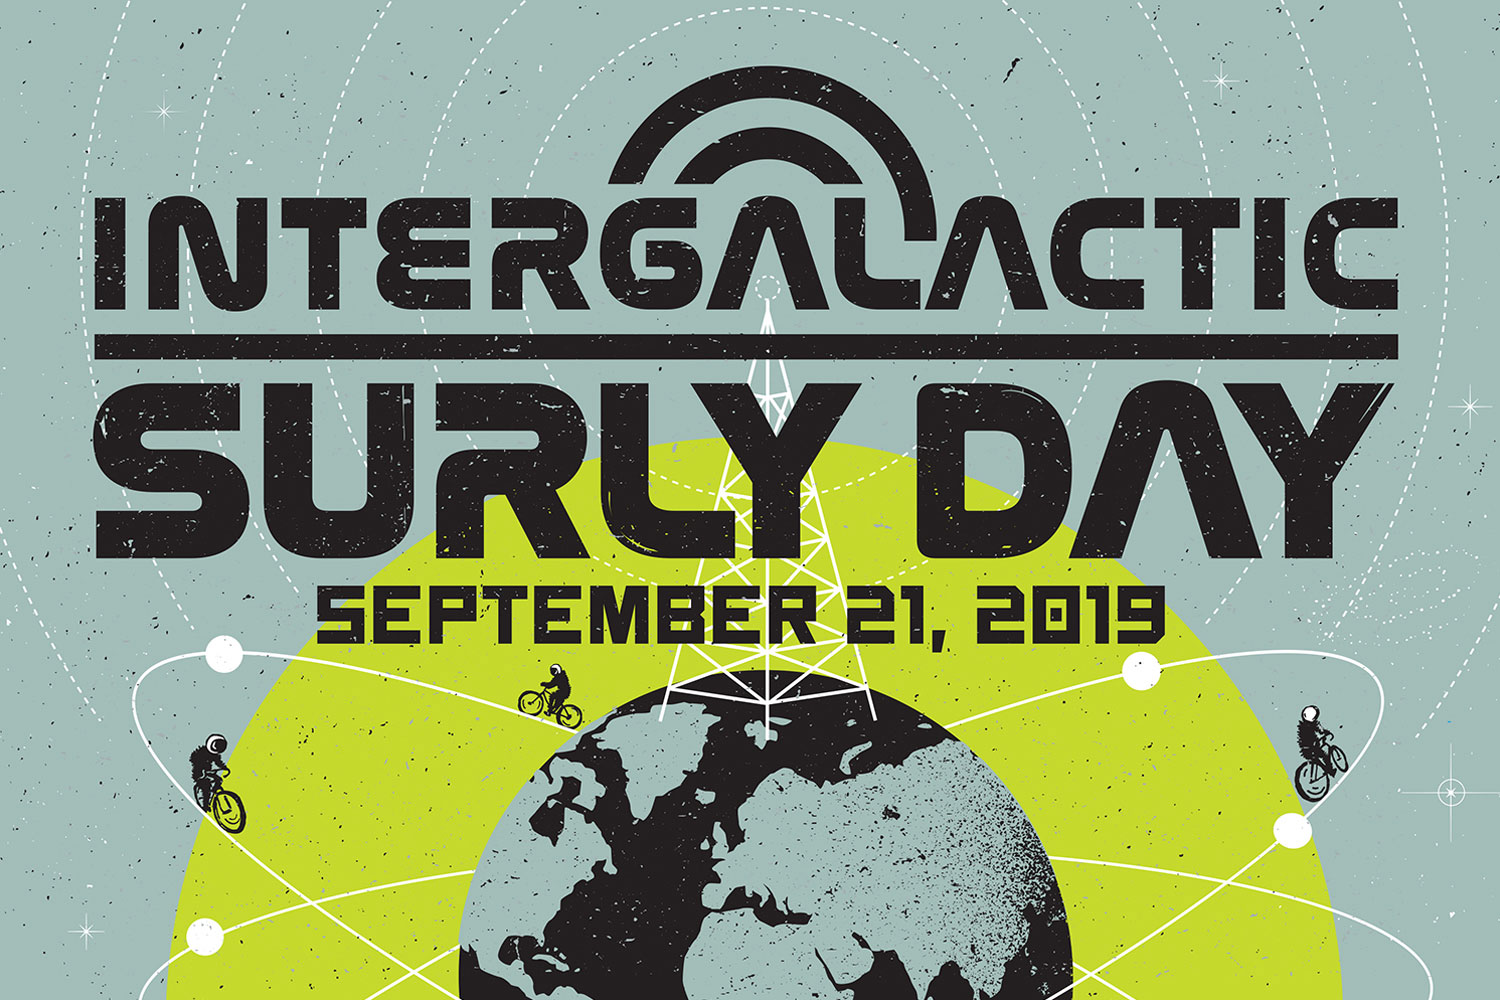 Intergalactic Surly Day – September 21, 2019